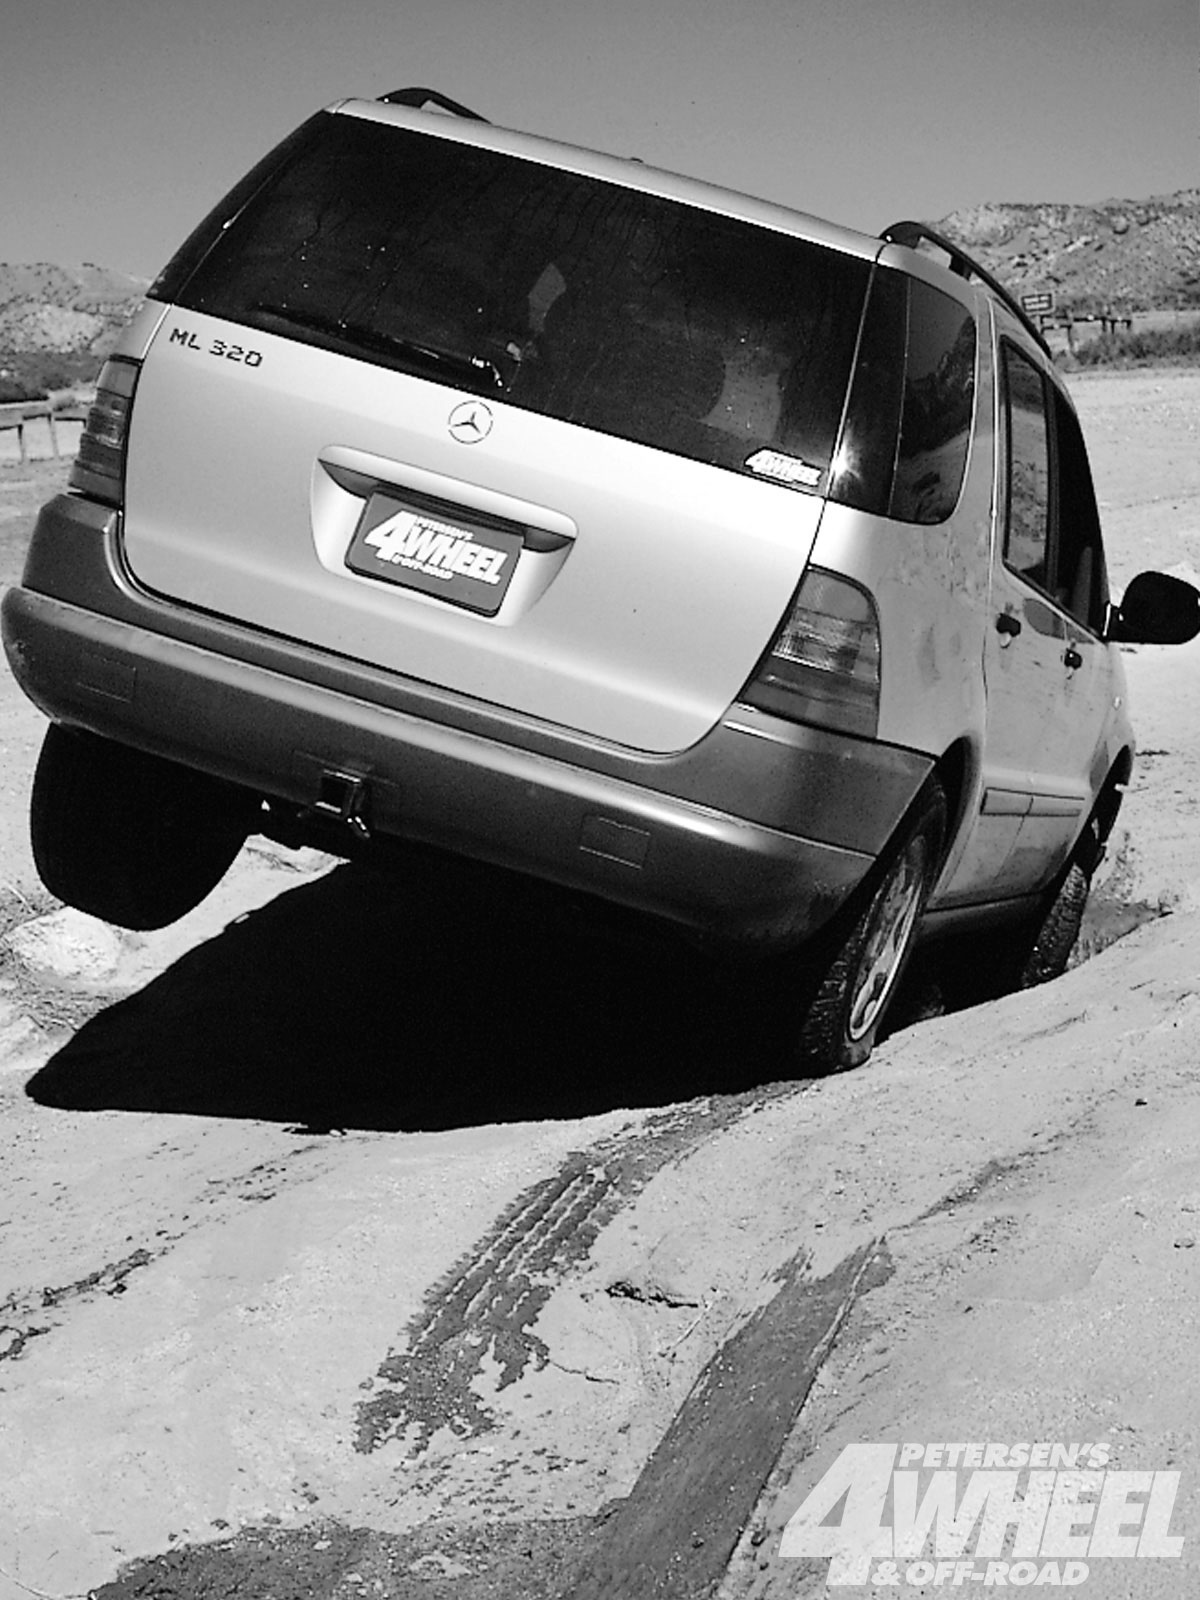 131 9802 32 o+131 9802 1998 4x4 of the year models mercedes benz ml320+rear end shot